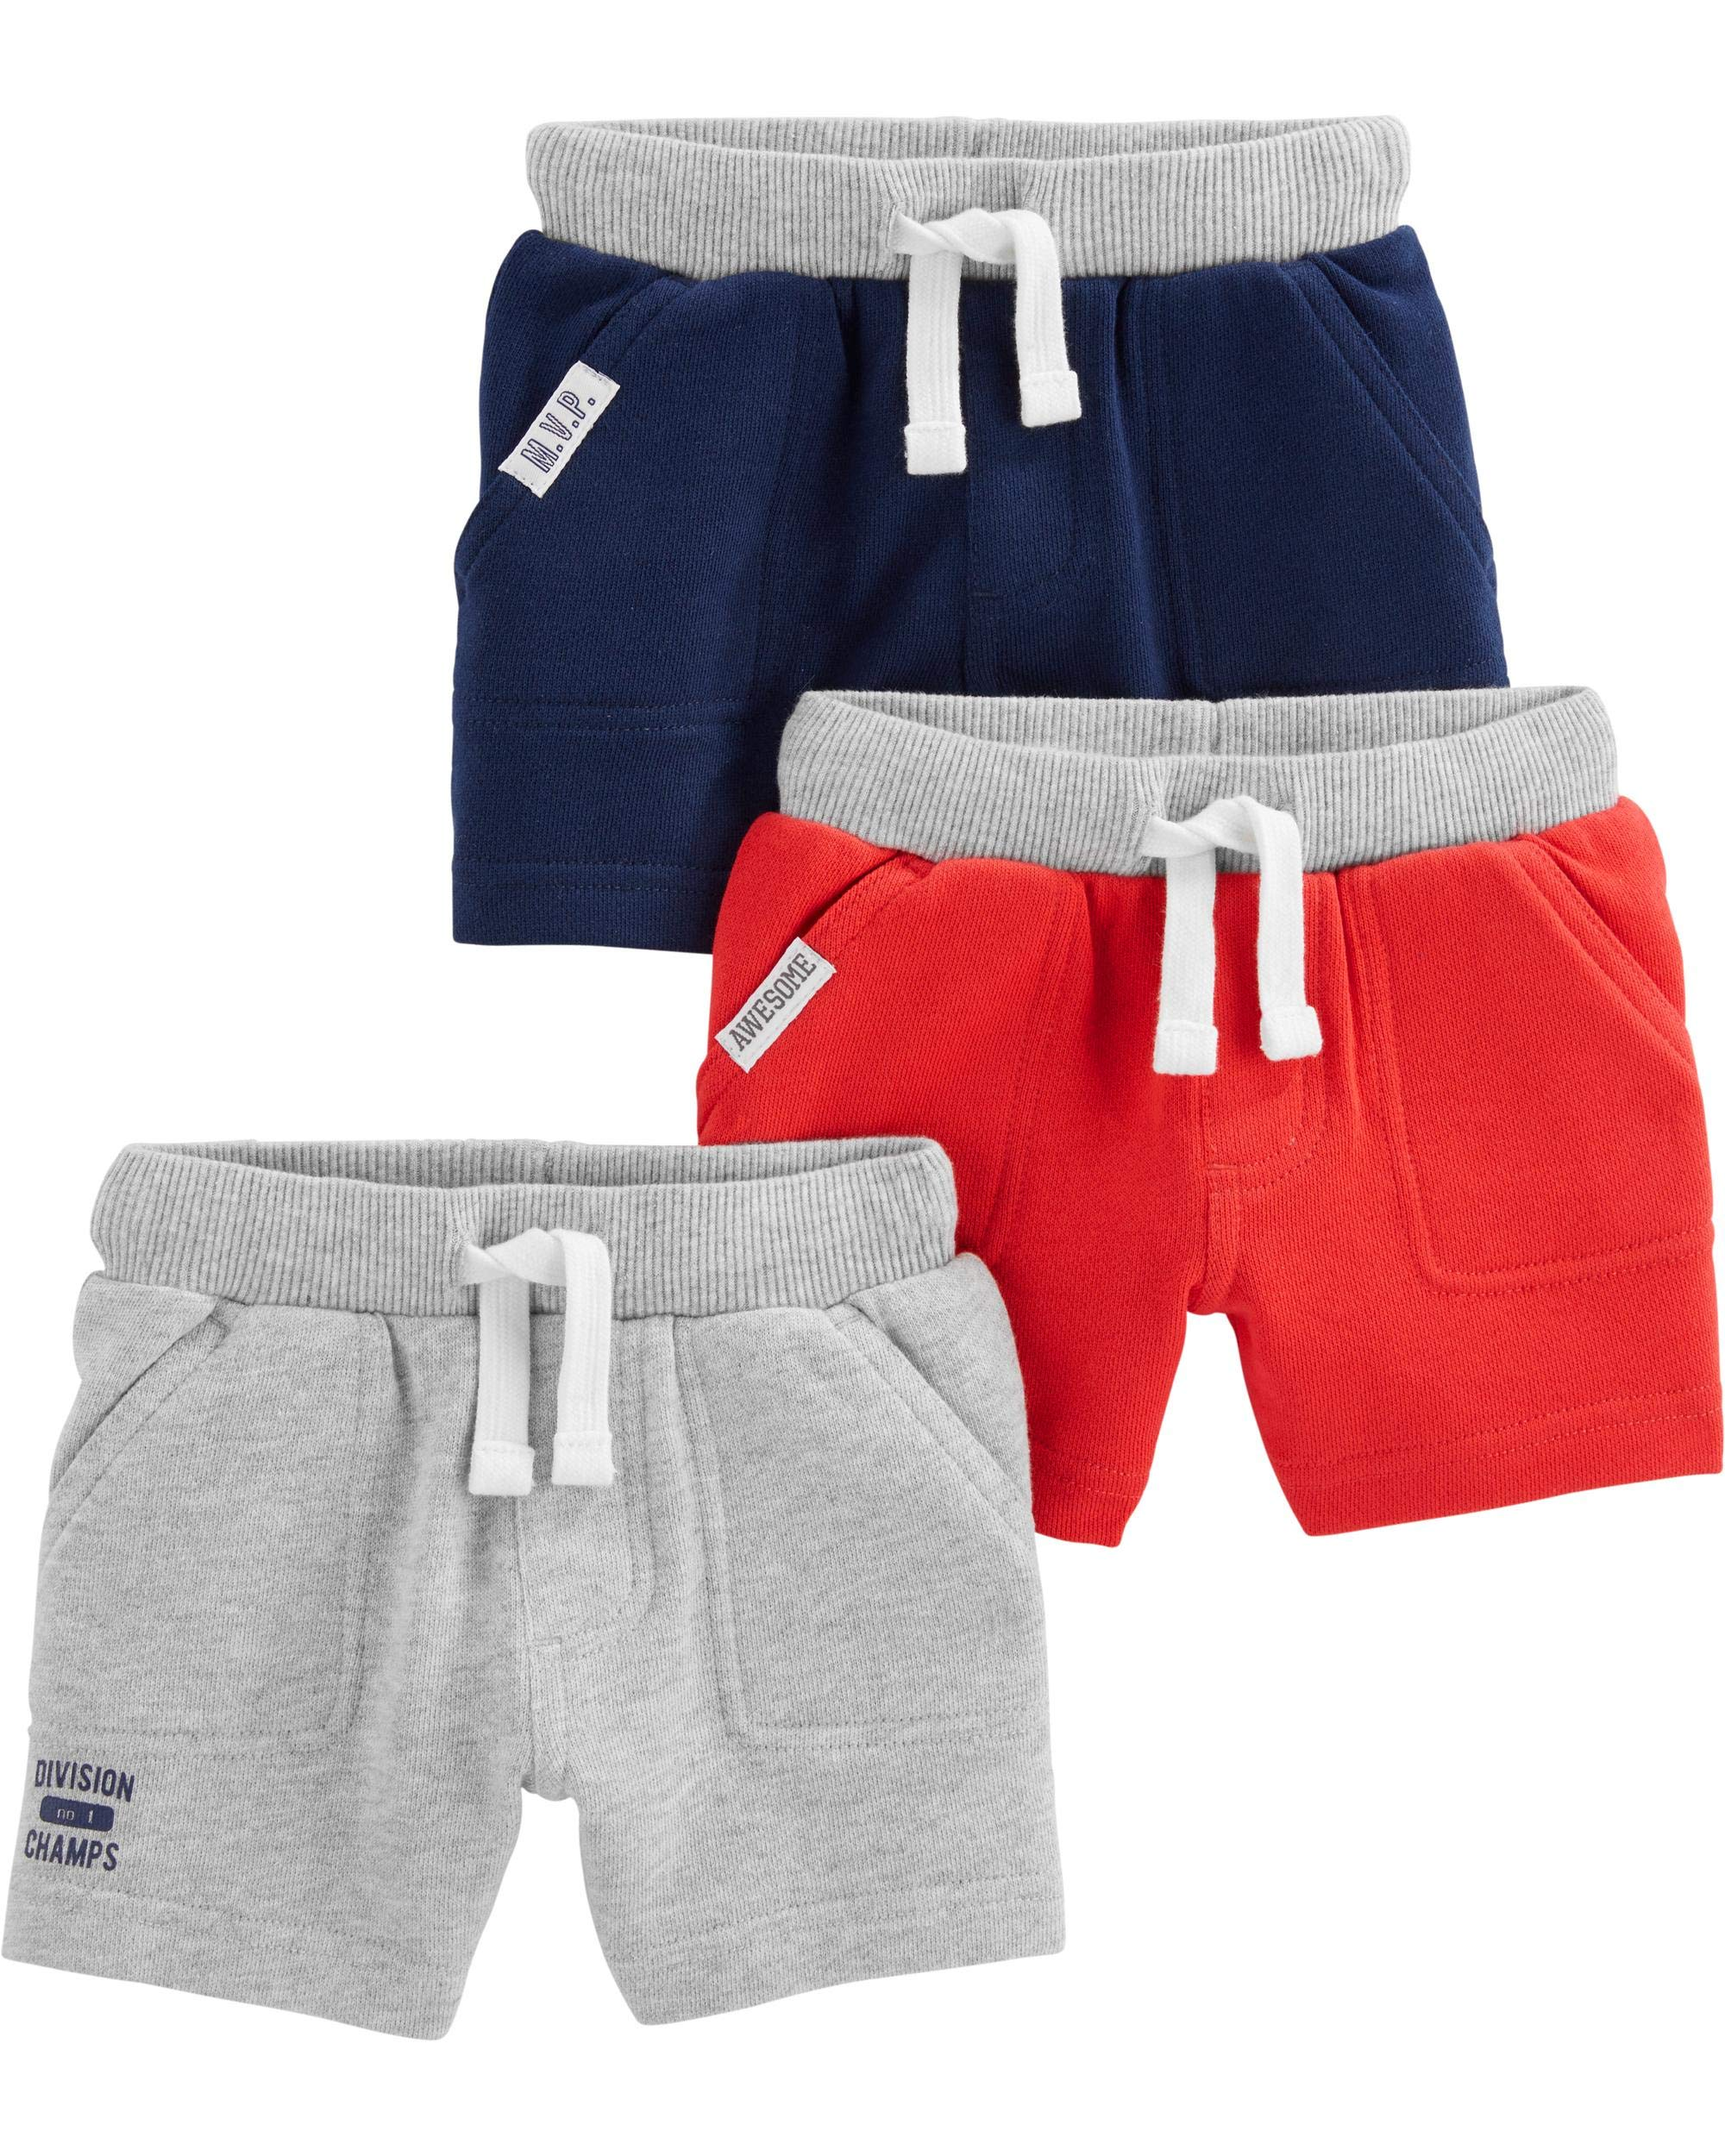 Simple Joys by Carter's Baby and Toddler Boys' Multi-Pack Knit Shorts